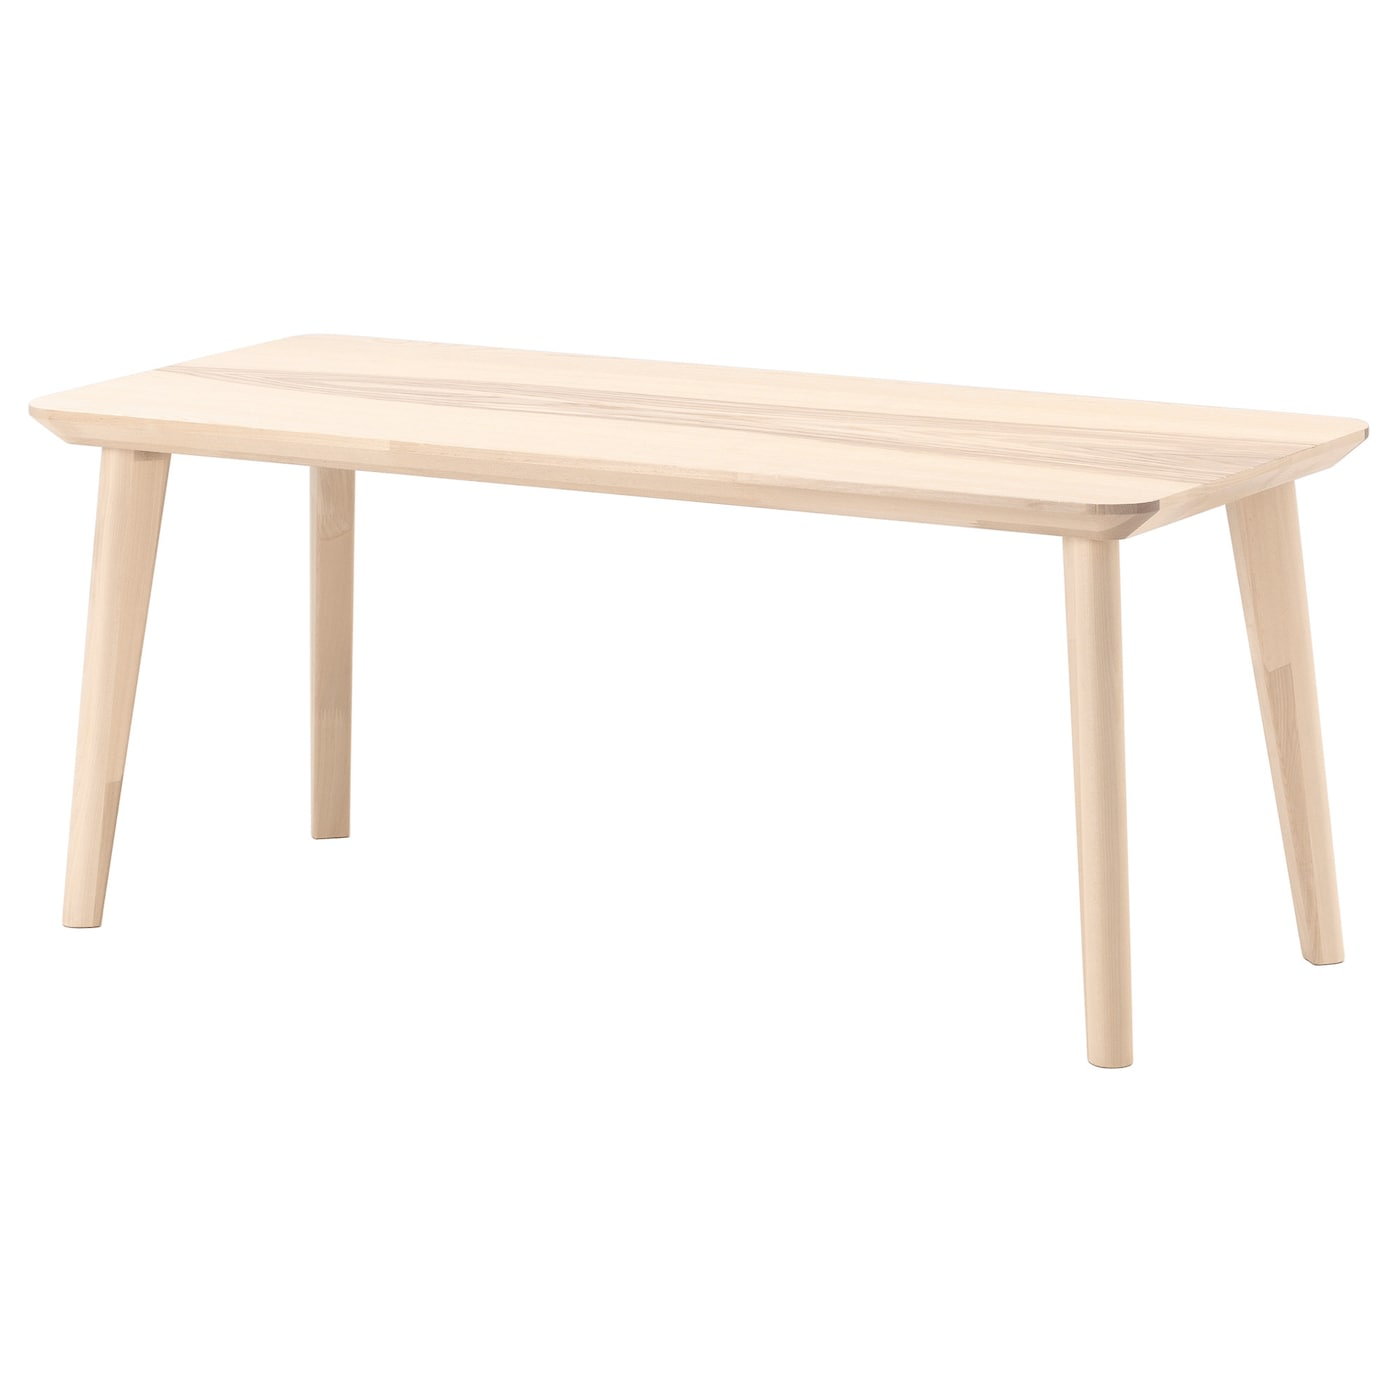 Lisabo coffee table ash veneer 118x50 cm ikea - Table basse design rectangulaire ...